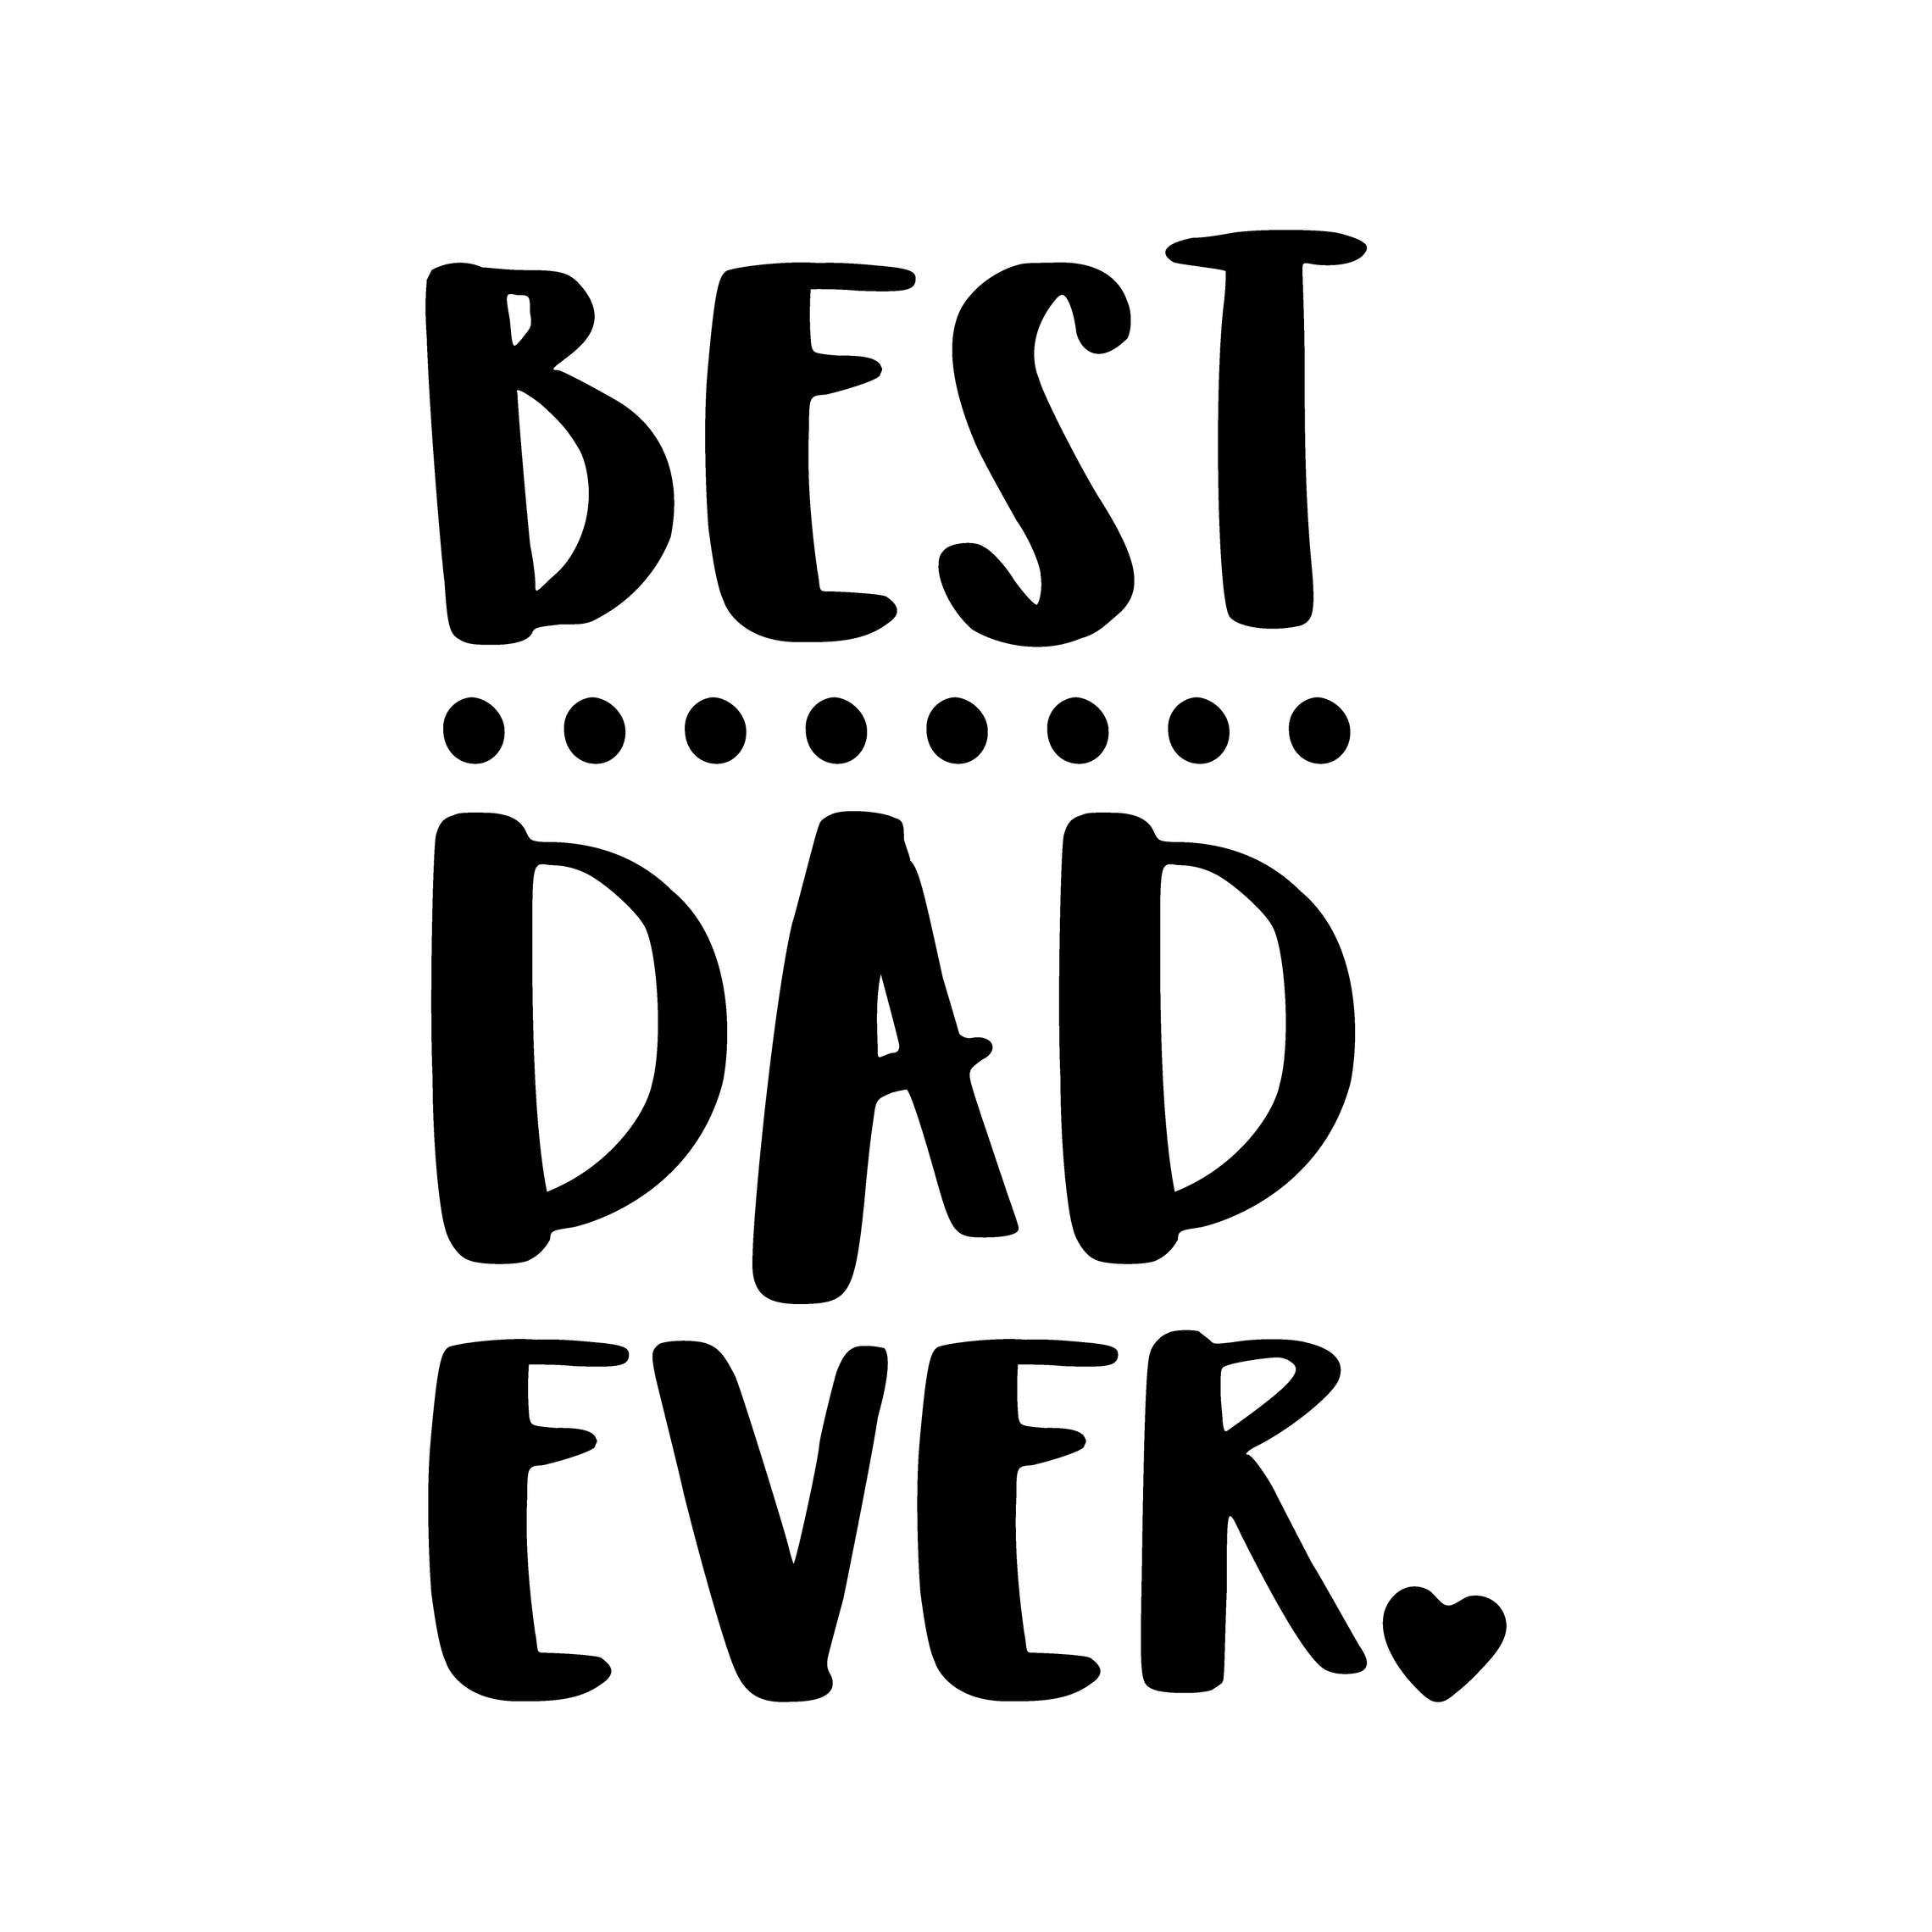 Dad clipart bbq, Dad bbq Transparent FREE for download on